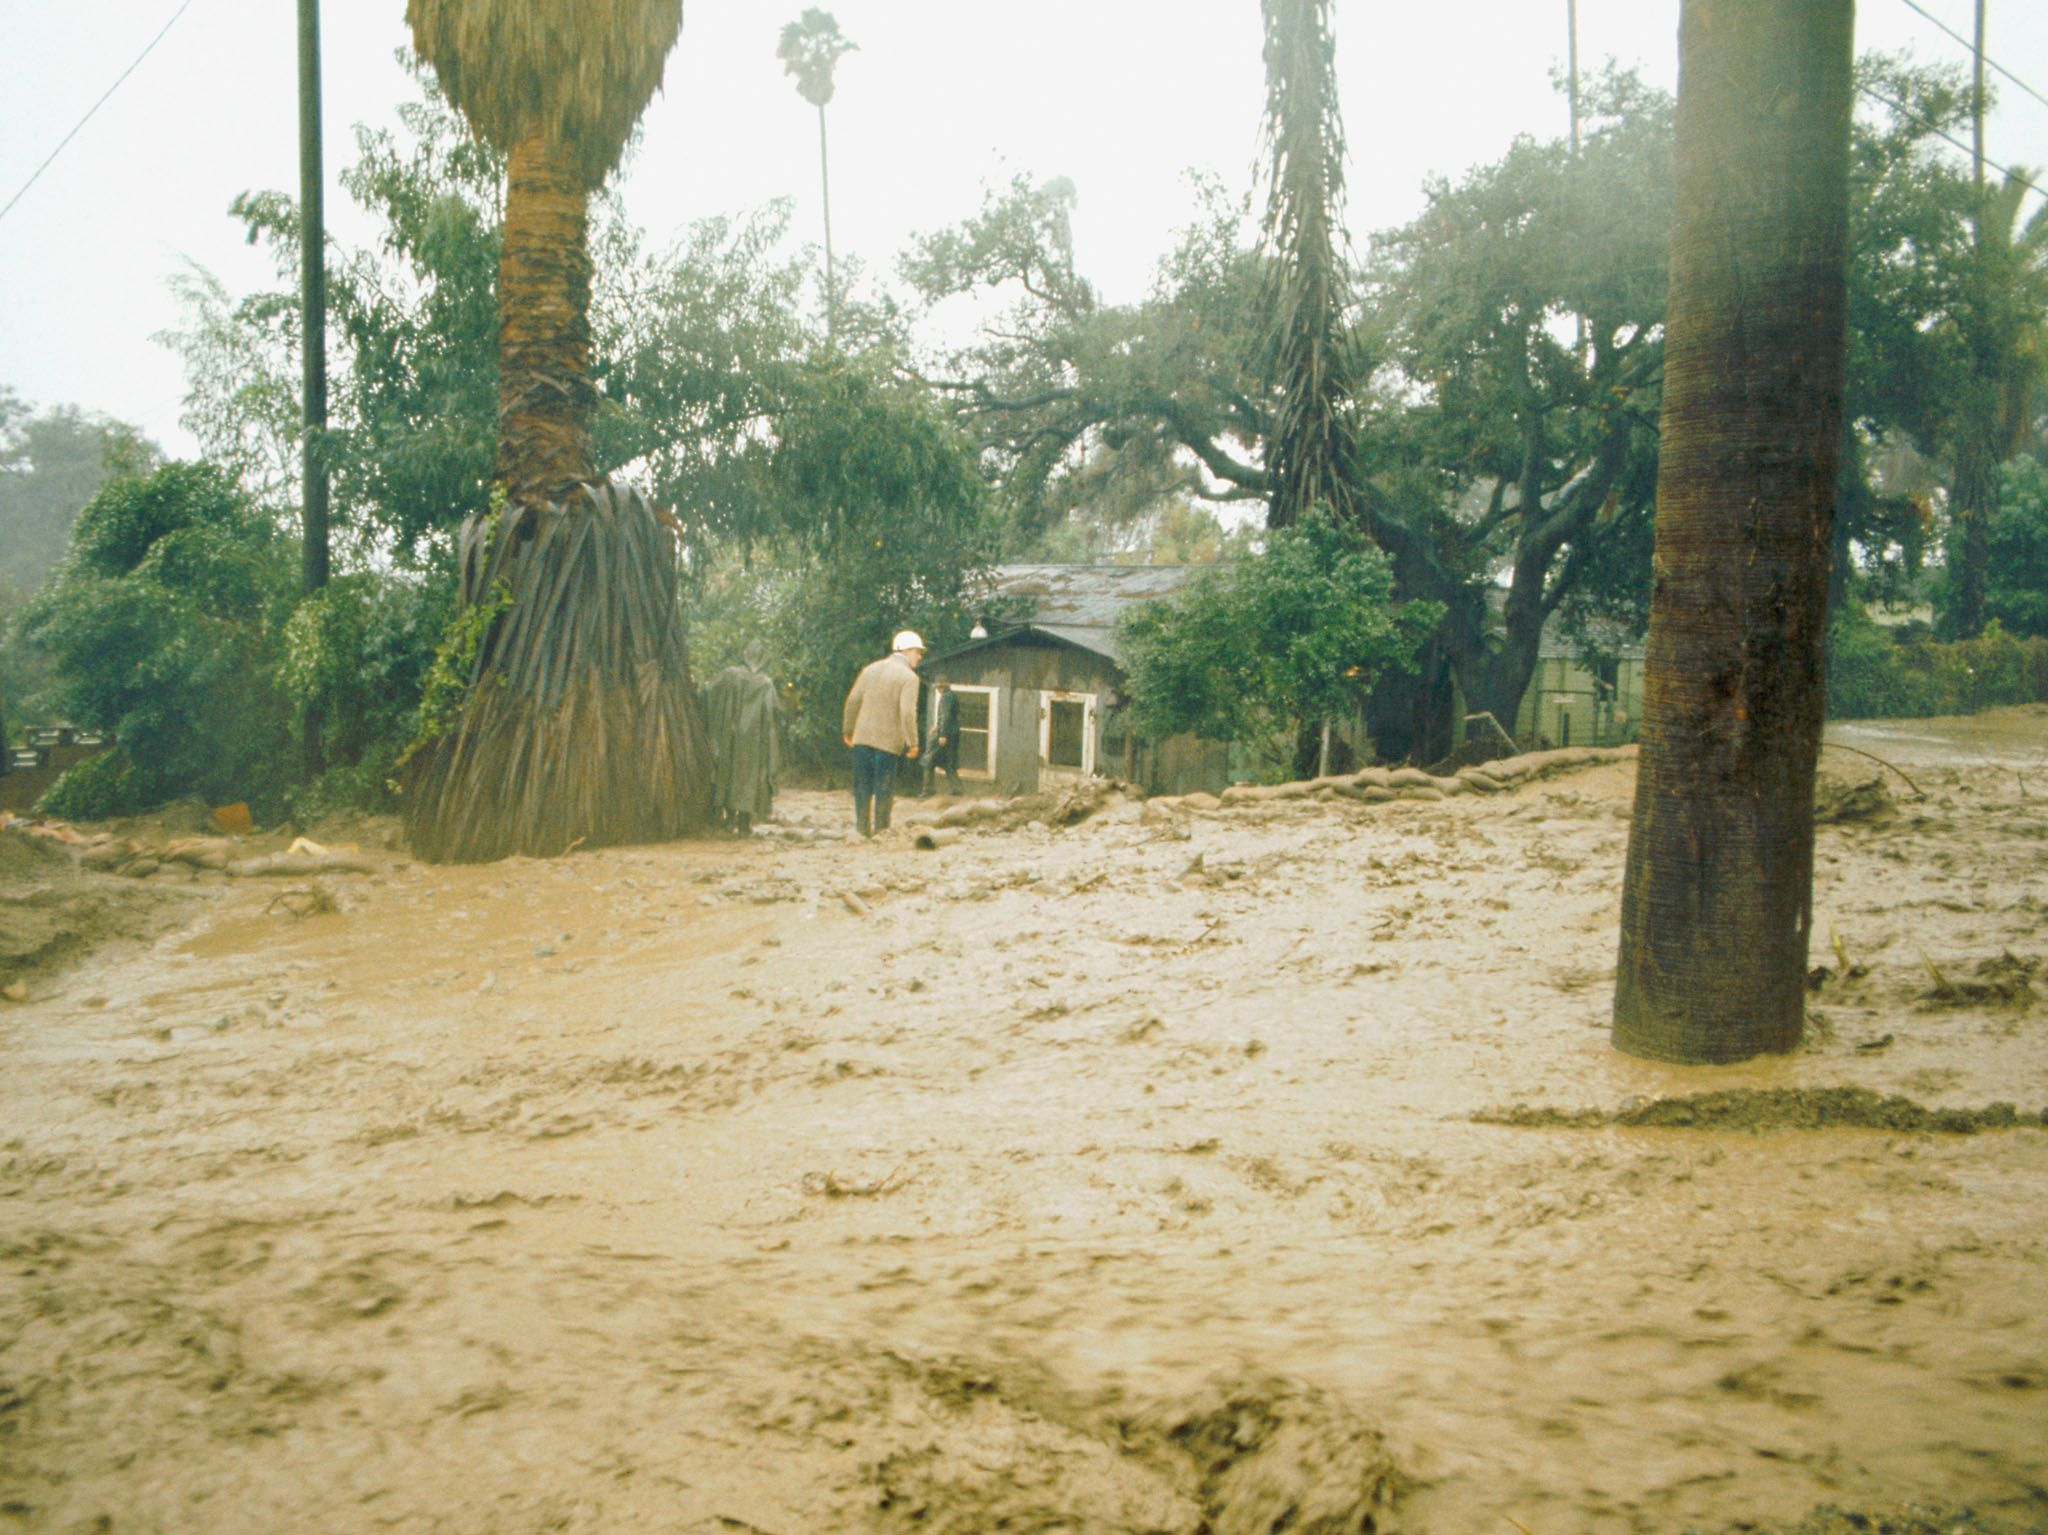 Storm week weather Mudslide in Glendora, California USA This is from Weather gone viral [Photo of the day - May 2021]